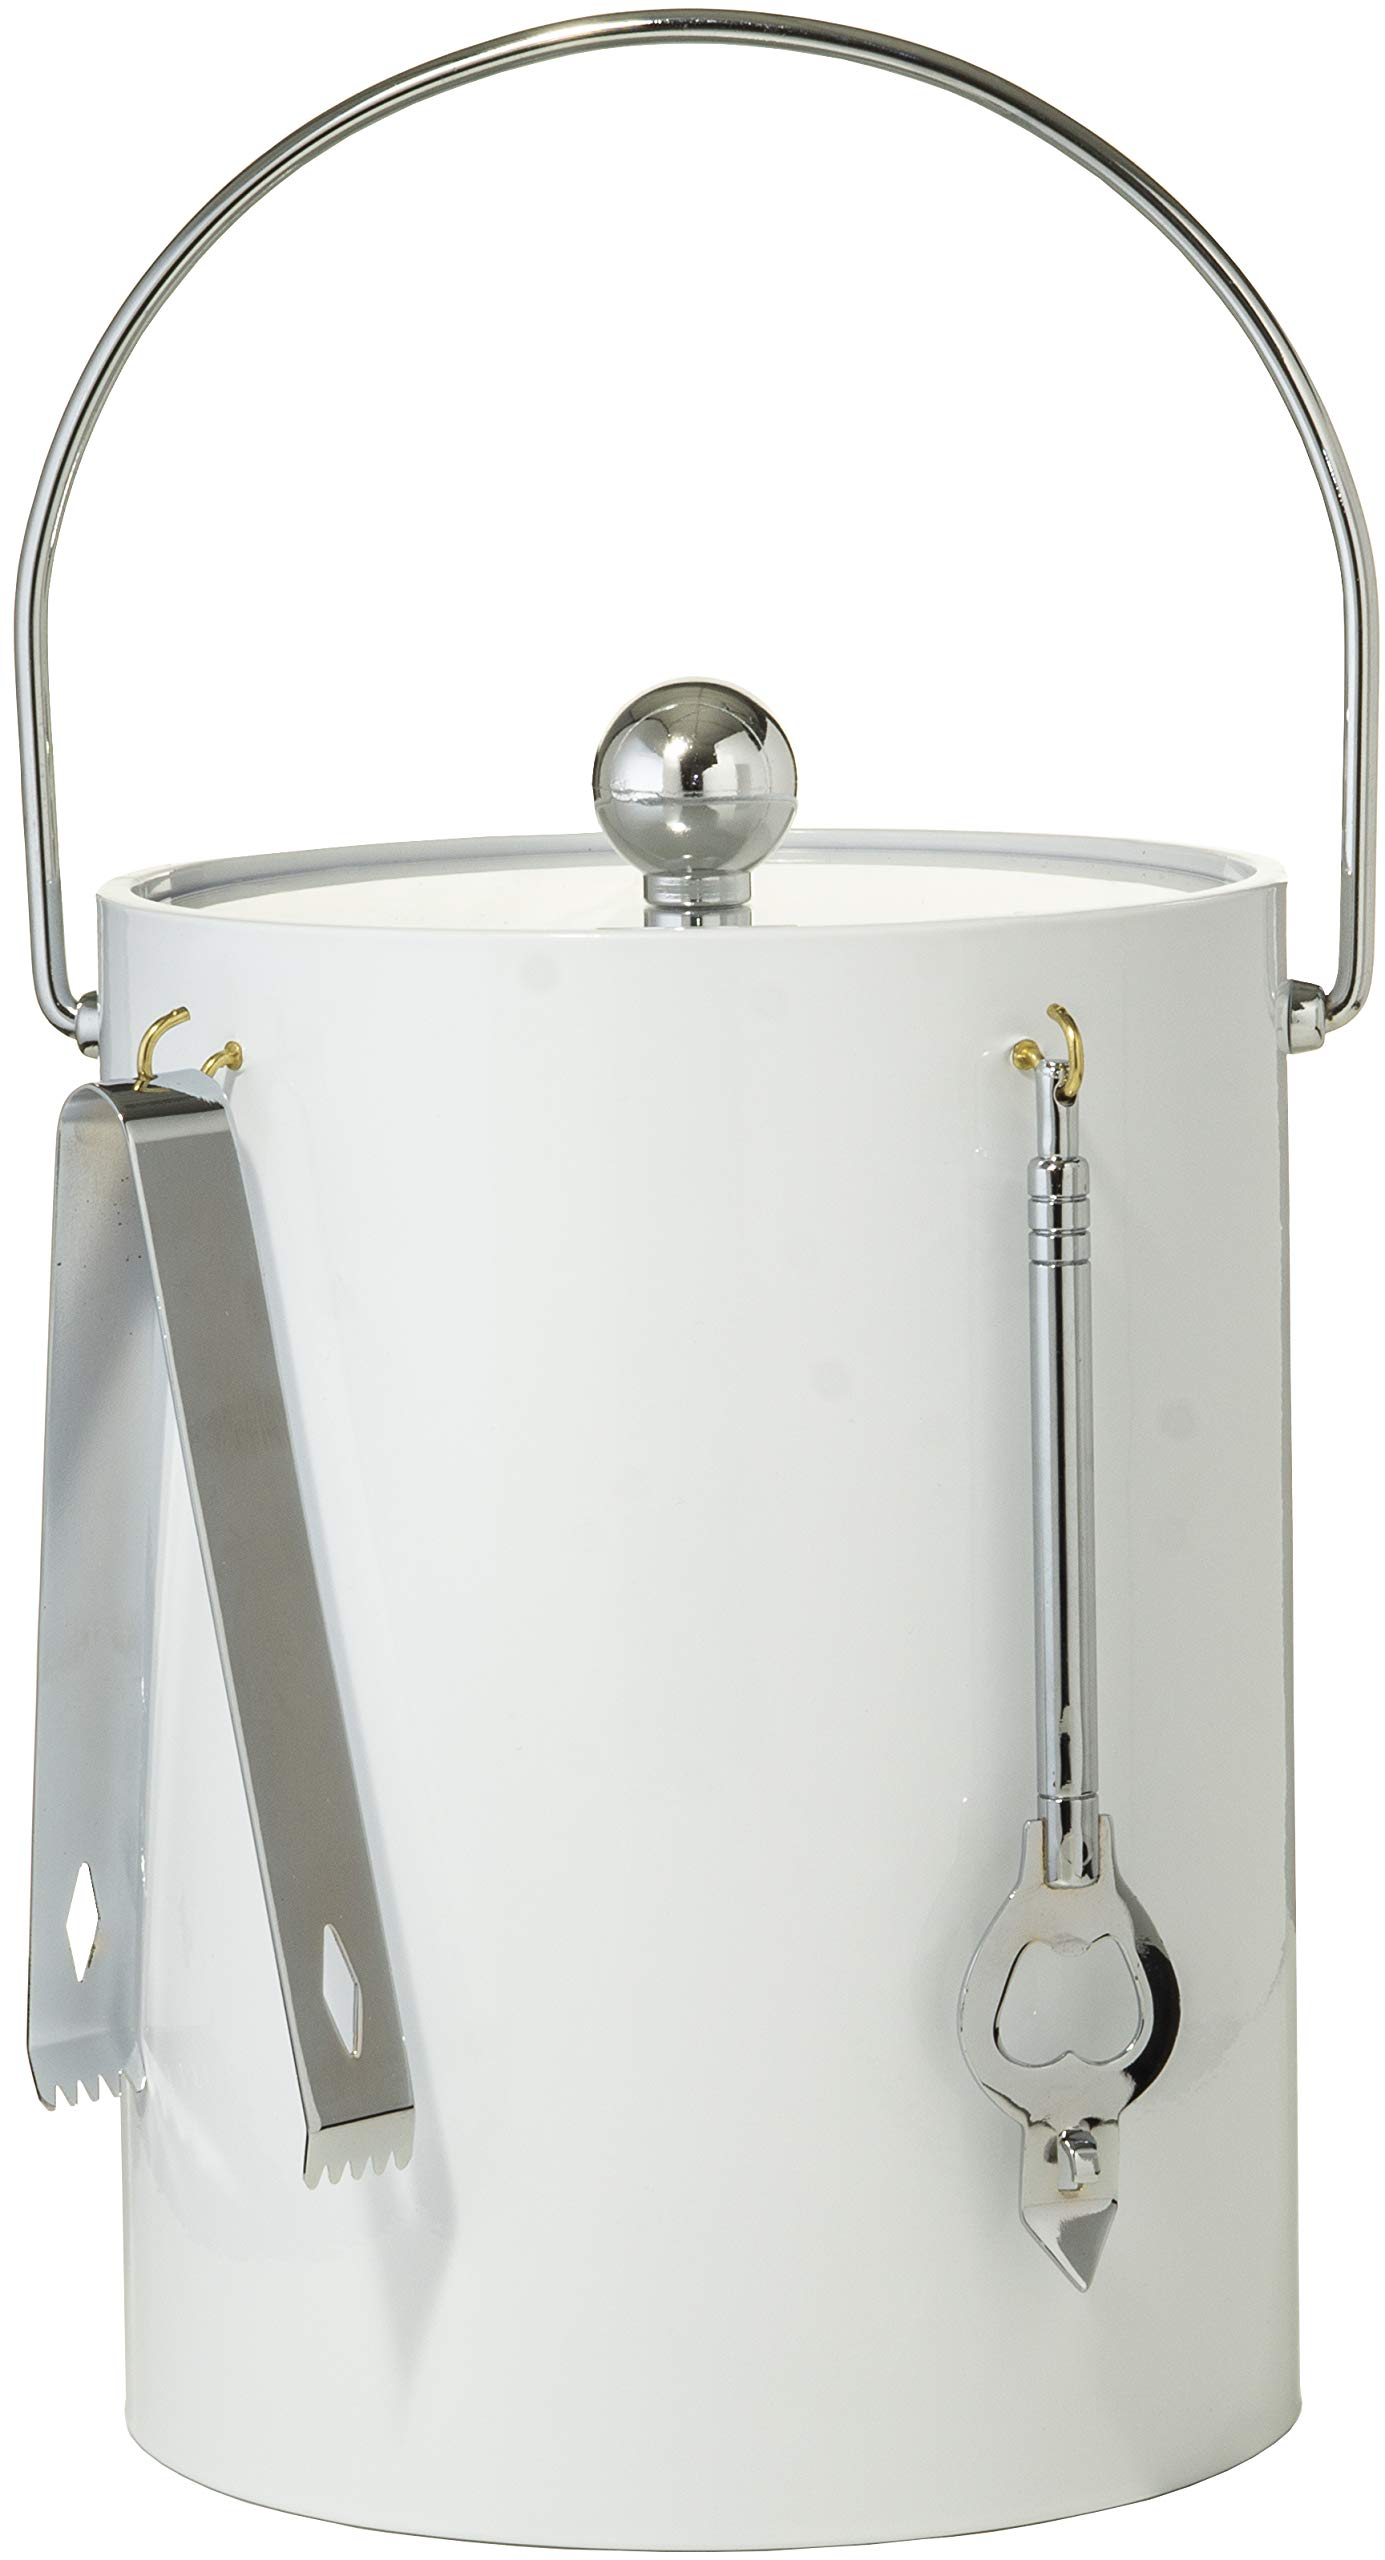 Hand Made In USA White Double Walled 5-Quart Insulated Ice Bucket With Ice Tongs & Bottle Opener by Mr. Ice Bucket By Stephanie Imports